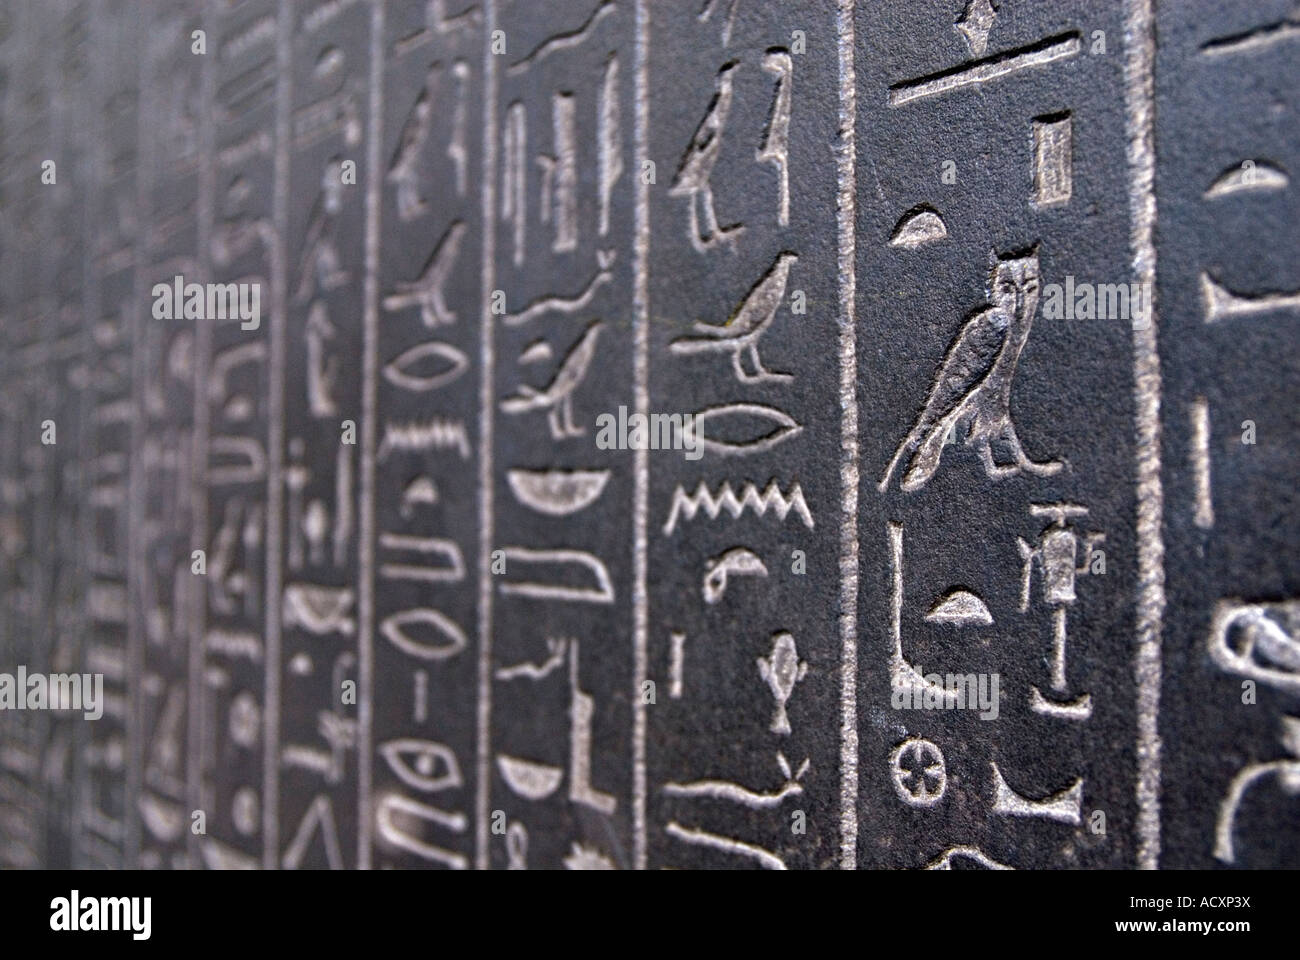 Ancient Egyptian hieroglyphs on sarcophagus in the British Museum London England UK - Stock Image